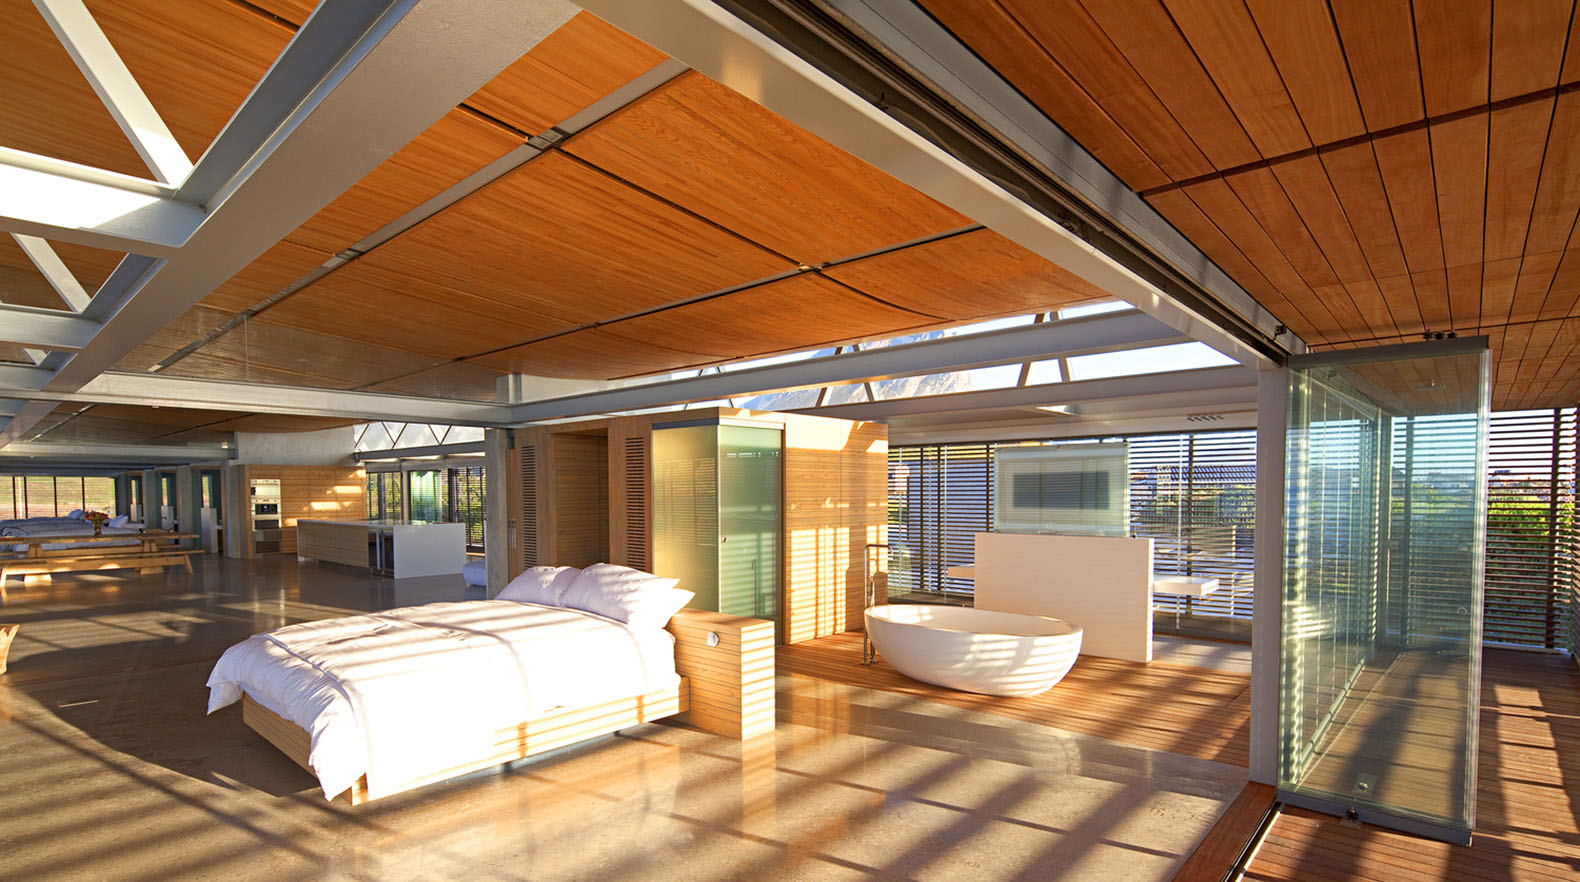 Cape town beach home controls natural light with powerful for Beach house design cape town